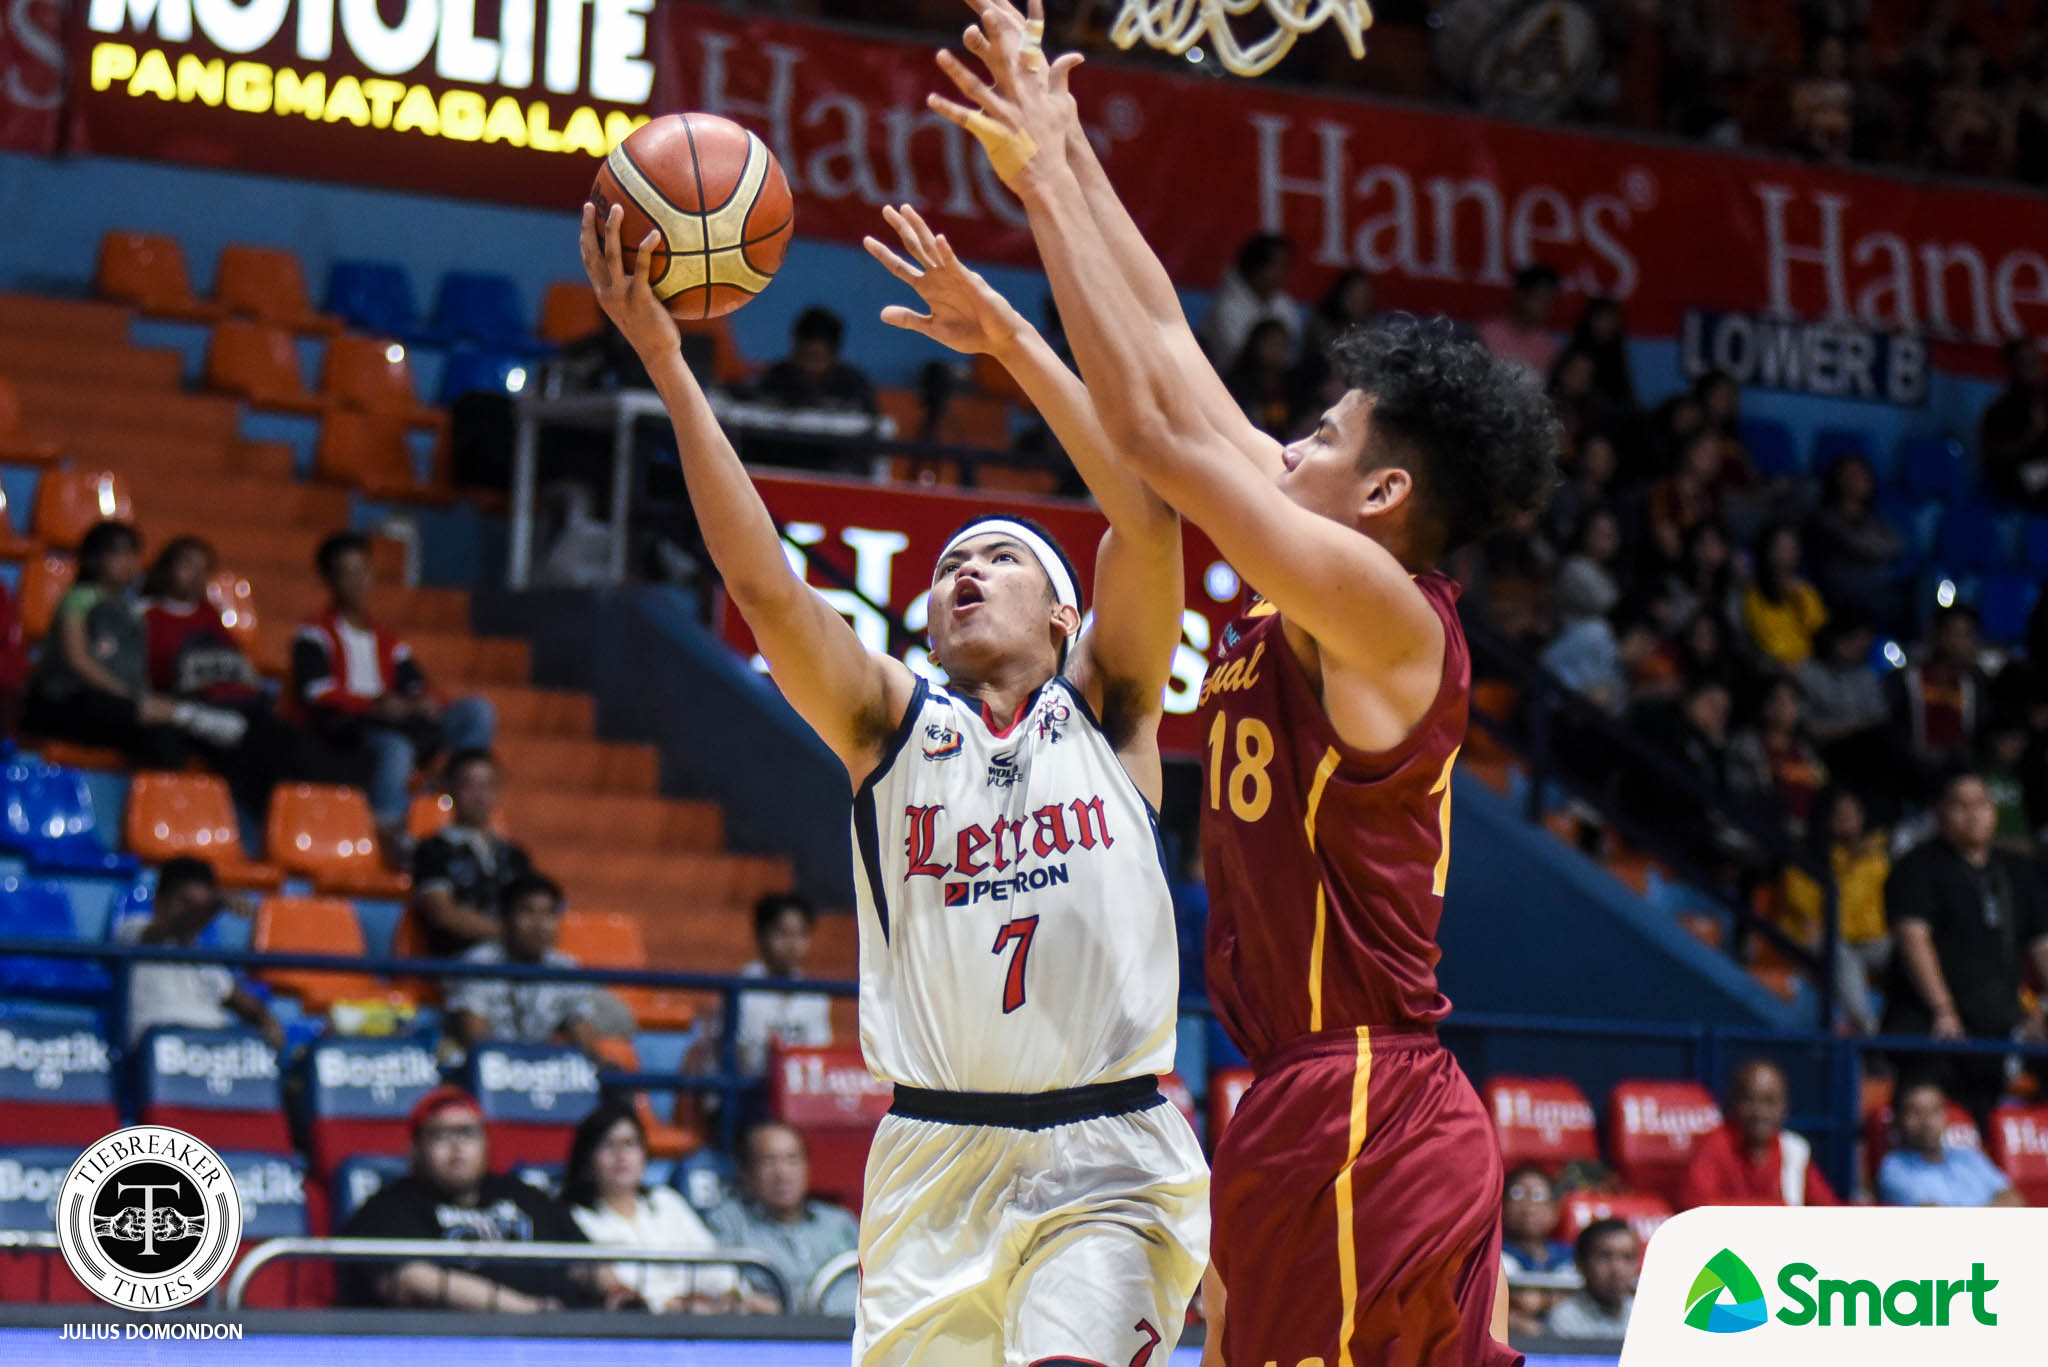 Tiebreaker Times Letran books Final Four ticket, romps Perpetual Basketball CSJL NCAA News UPHSD  Perpetual Seniors Basketball NCAA Season 95 Seniors Basketball NCAA Season 95 Letran Seniors Basketball Jielo Razon Jerrick Balanza Frankie Lim Fran Yu Edgar Charcos Christian Balagasay Bonnie Tan Ato Ular